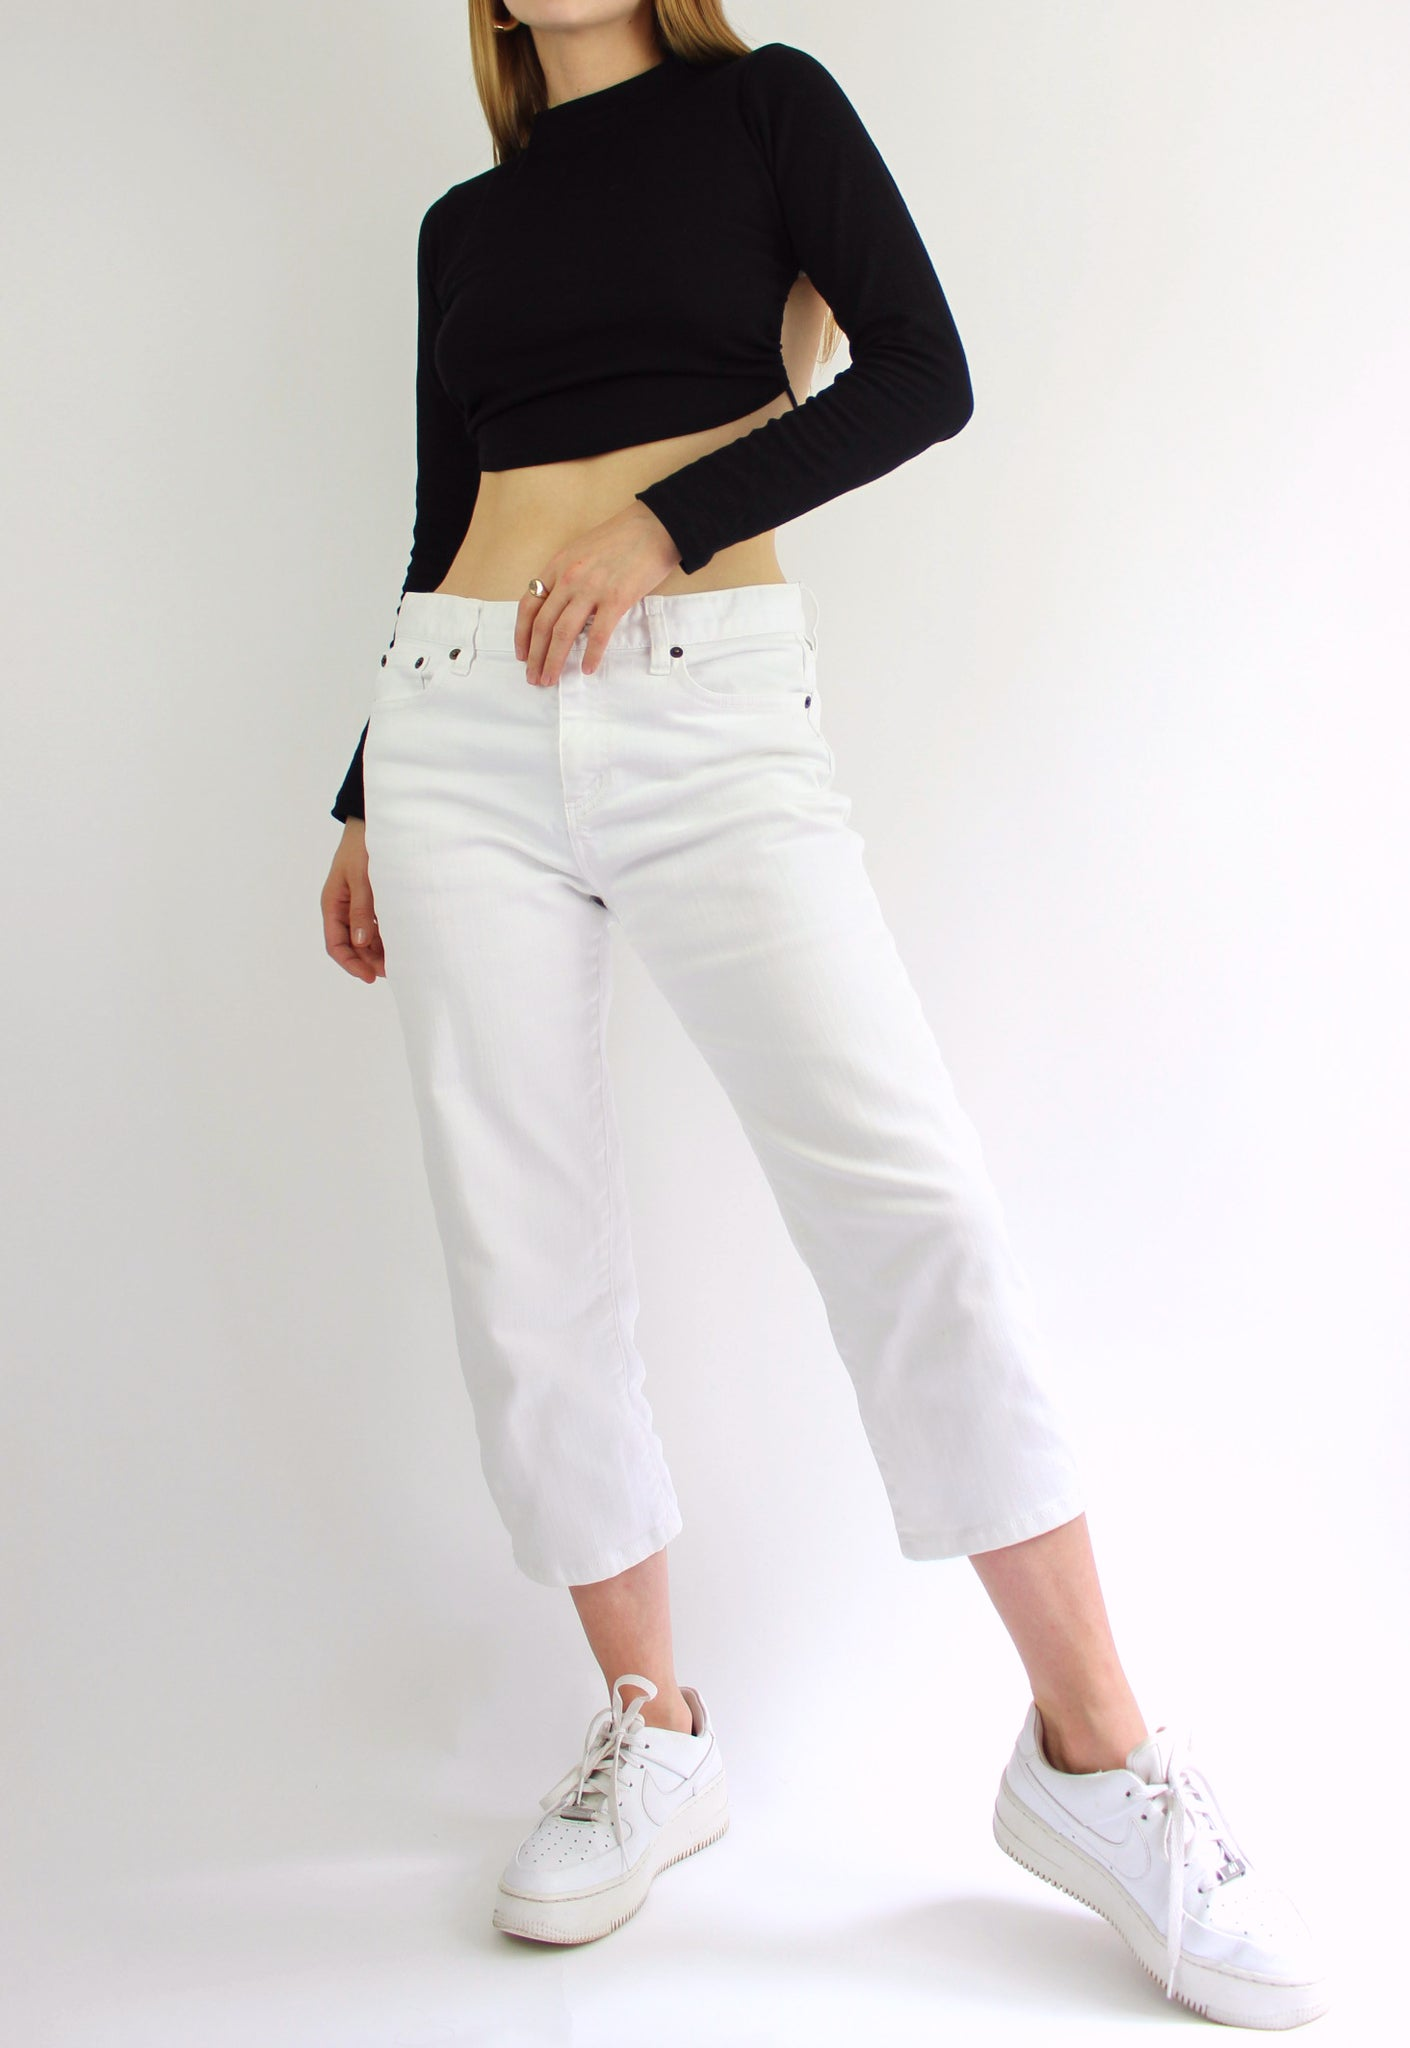 Lauren By Ralph Lauren White Mid-Calf Jeans